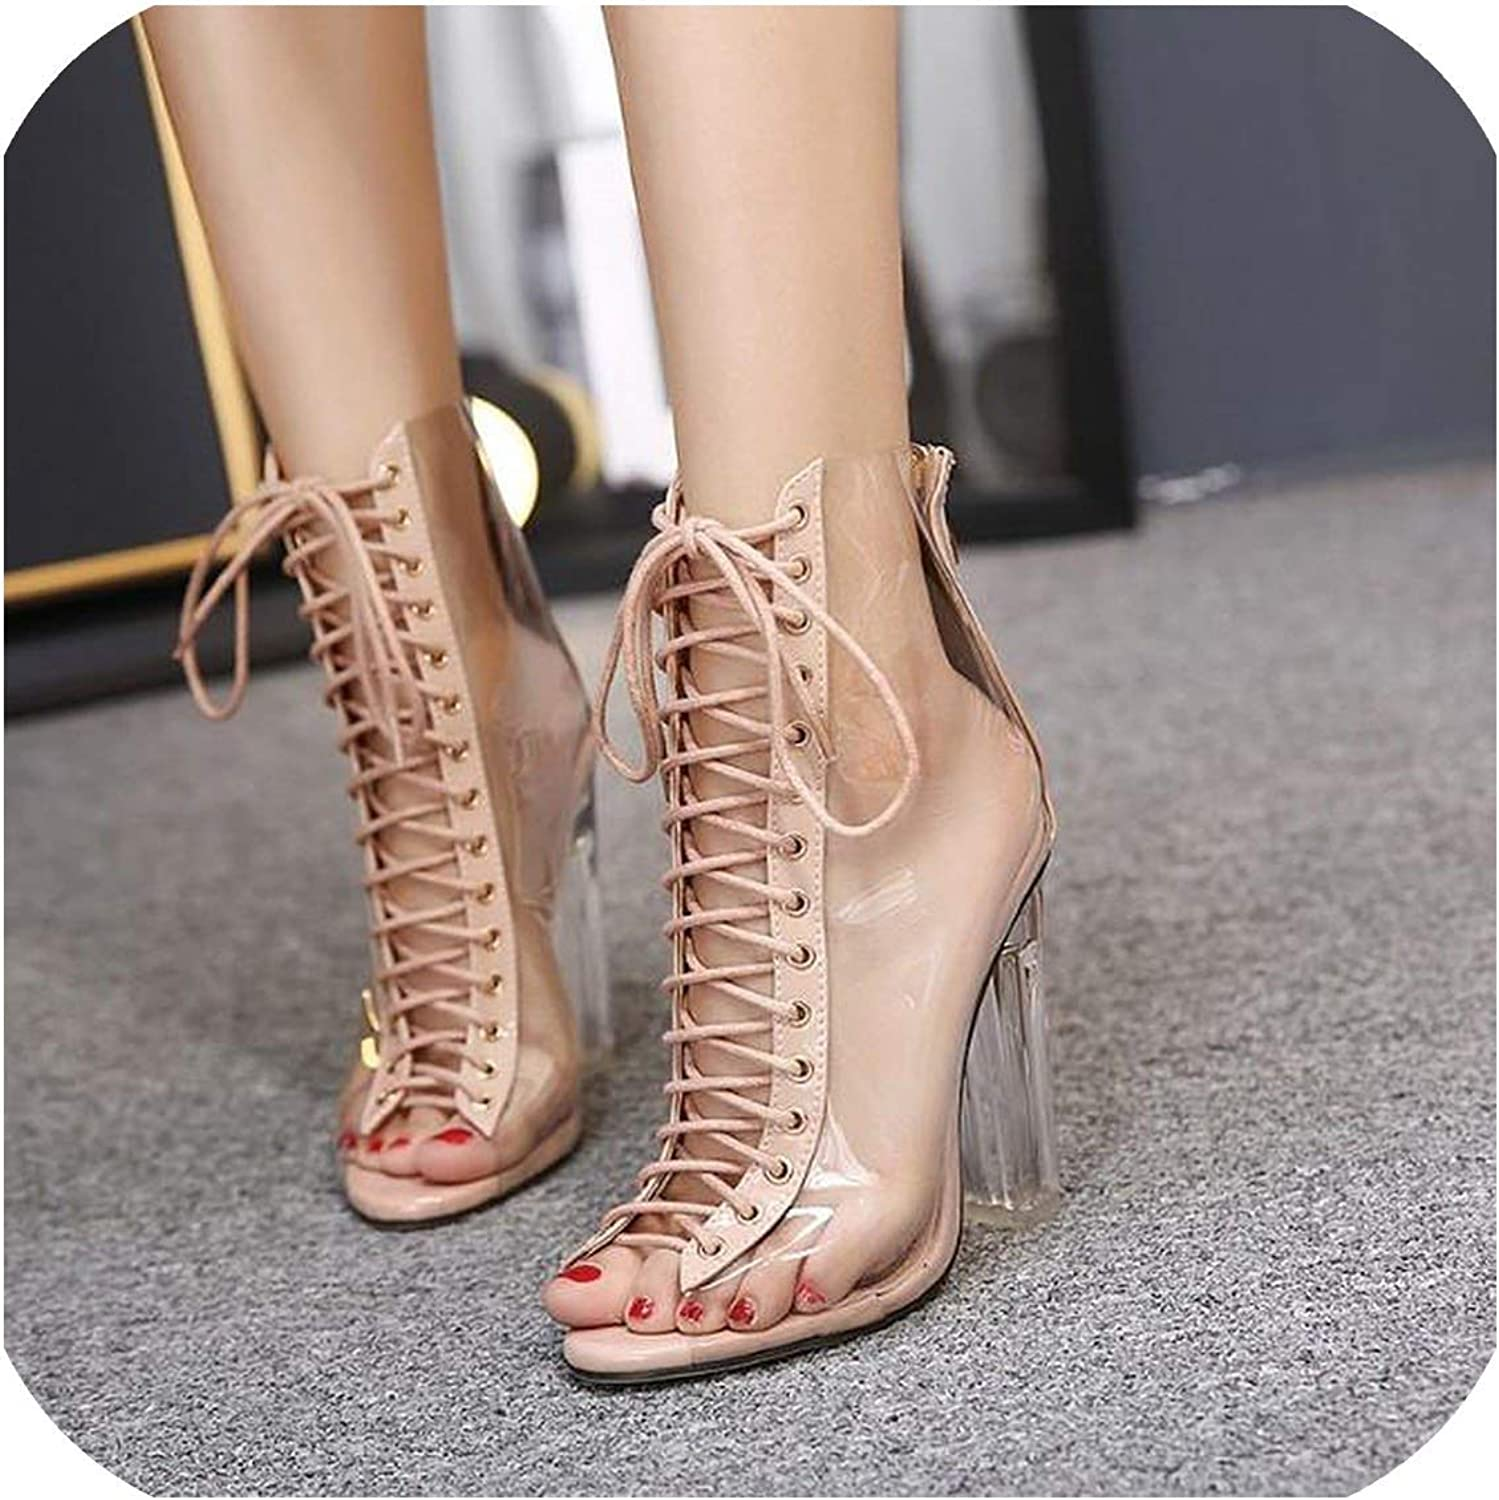 Beauty-inside Sexy PVC Transparent Gladiator Sandals Cross Strappy Peep Toe Clear Chunky Heels Women Ankle Boots